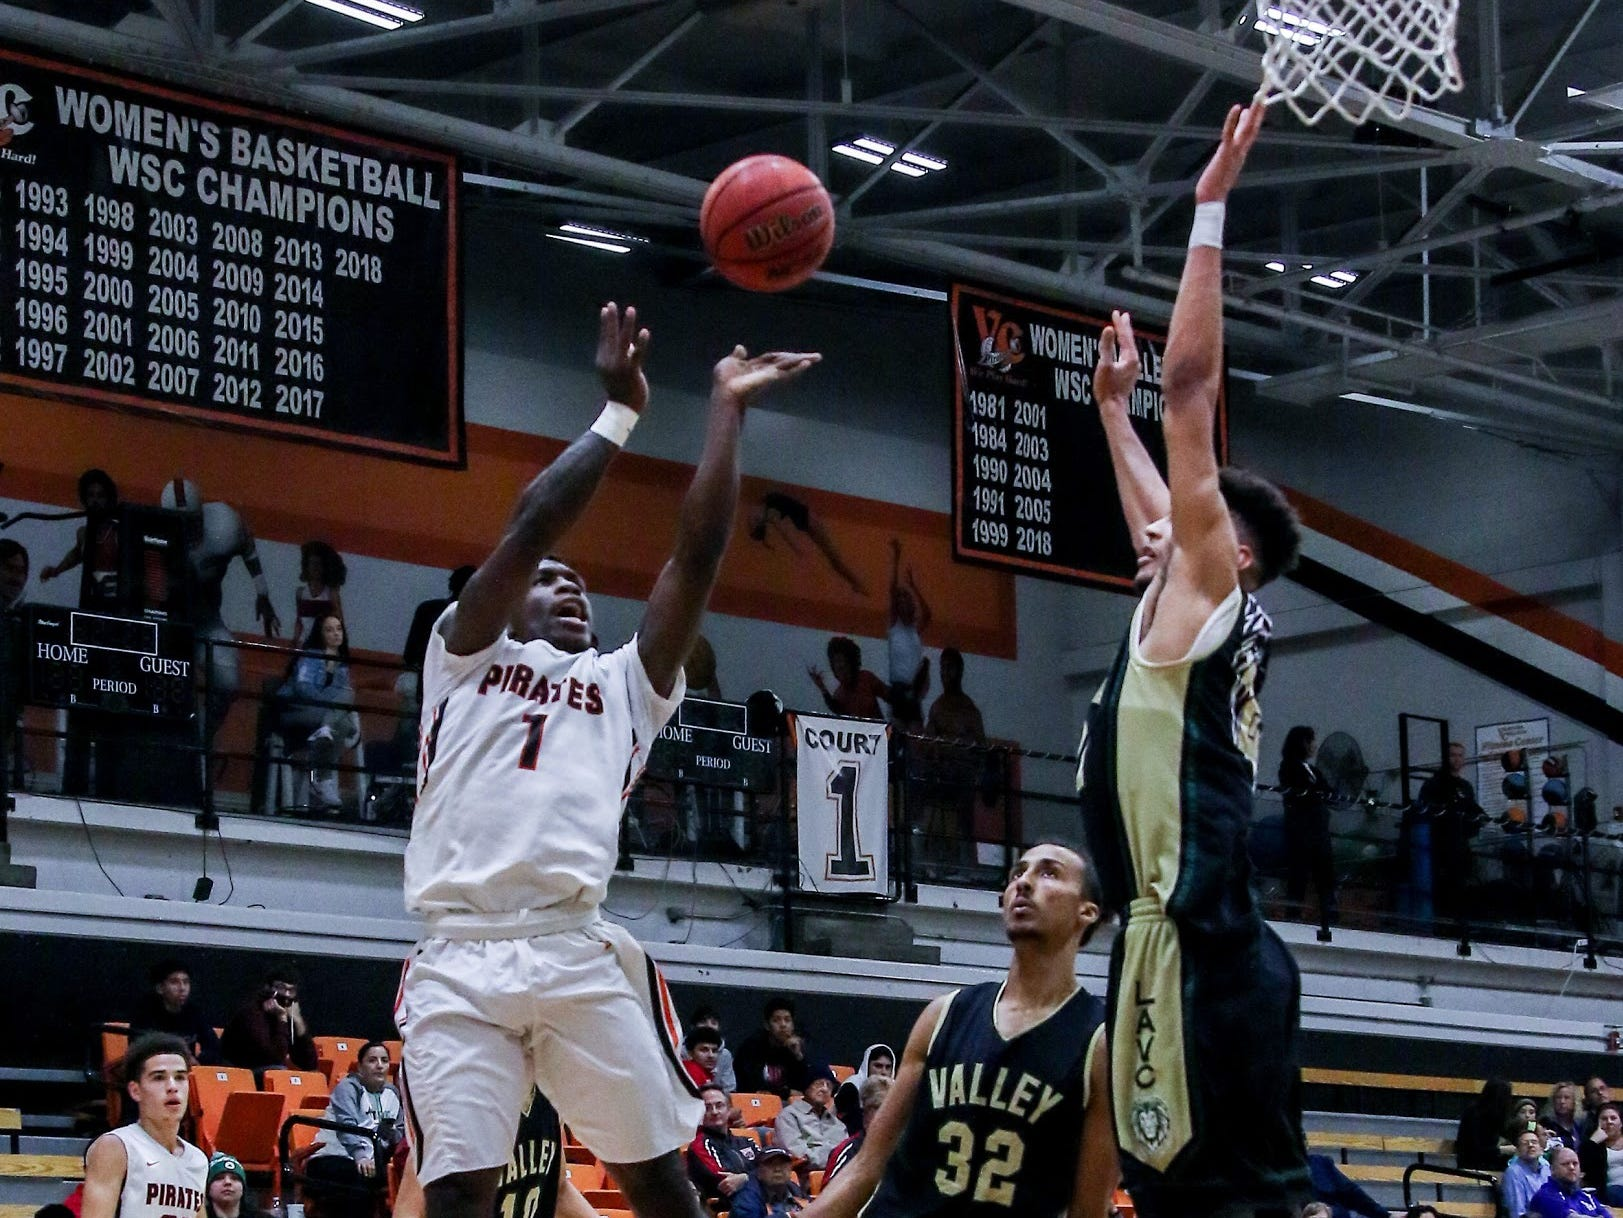 Ventura College's Tim Turner releases a jump shot against Los Angeles Valley on Wednesday night in the CCCAA Southern California regional quarterfinals at the VC Athletic Event Center. L.A. Valley won, 78-74.